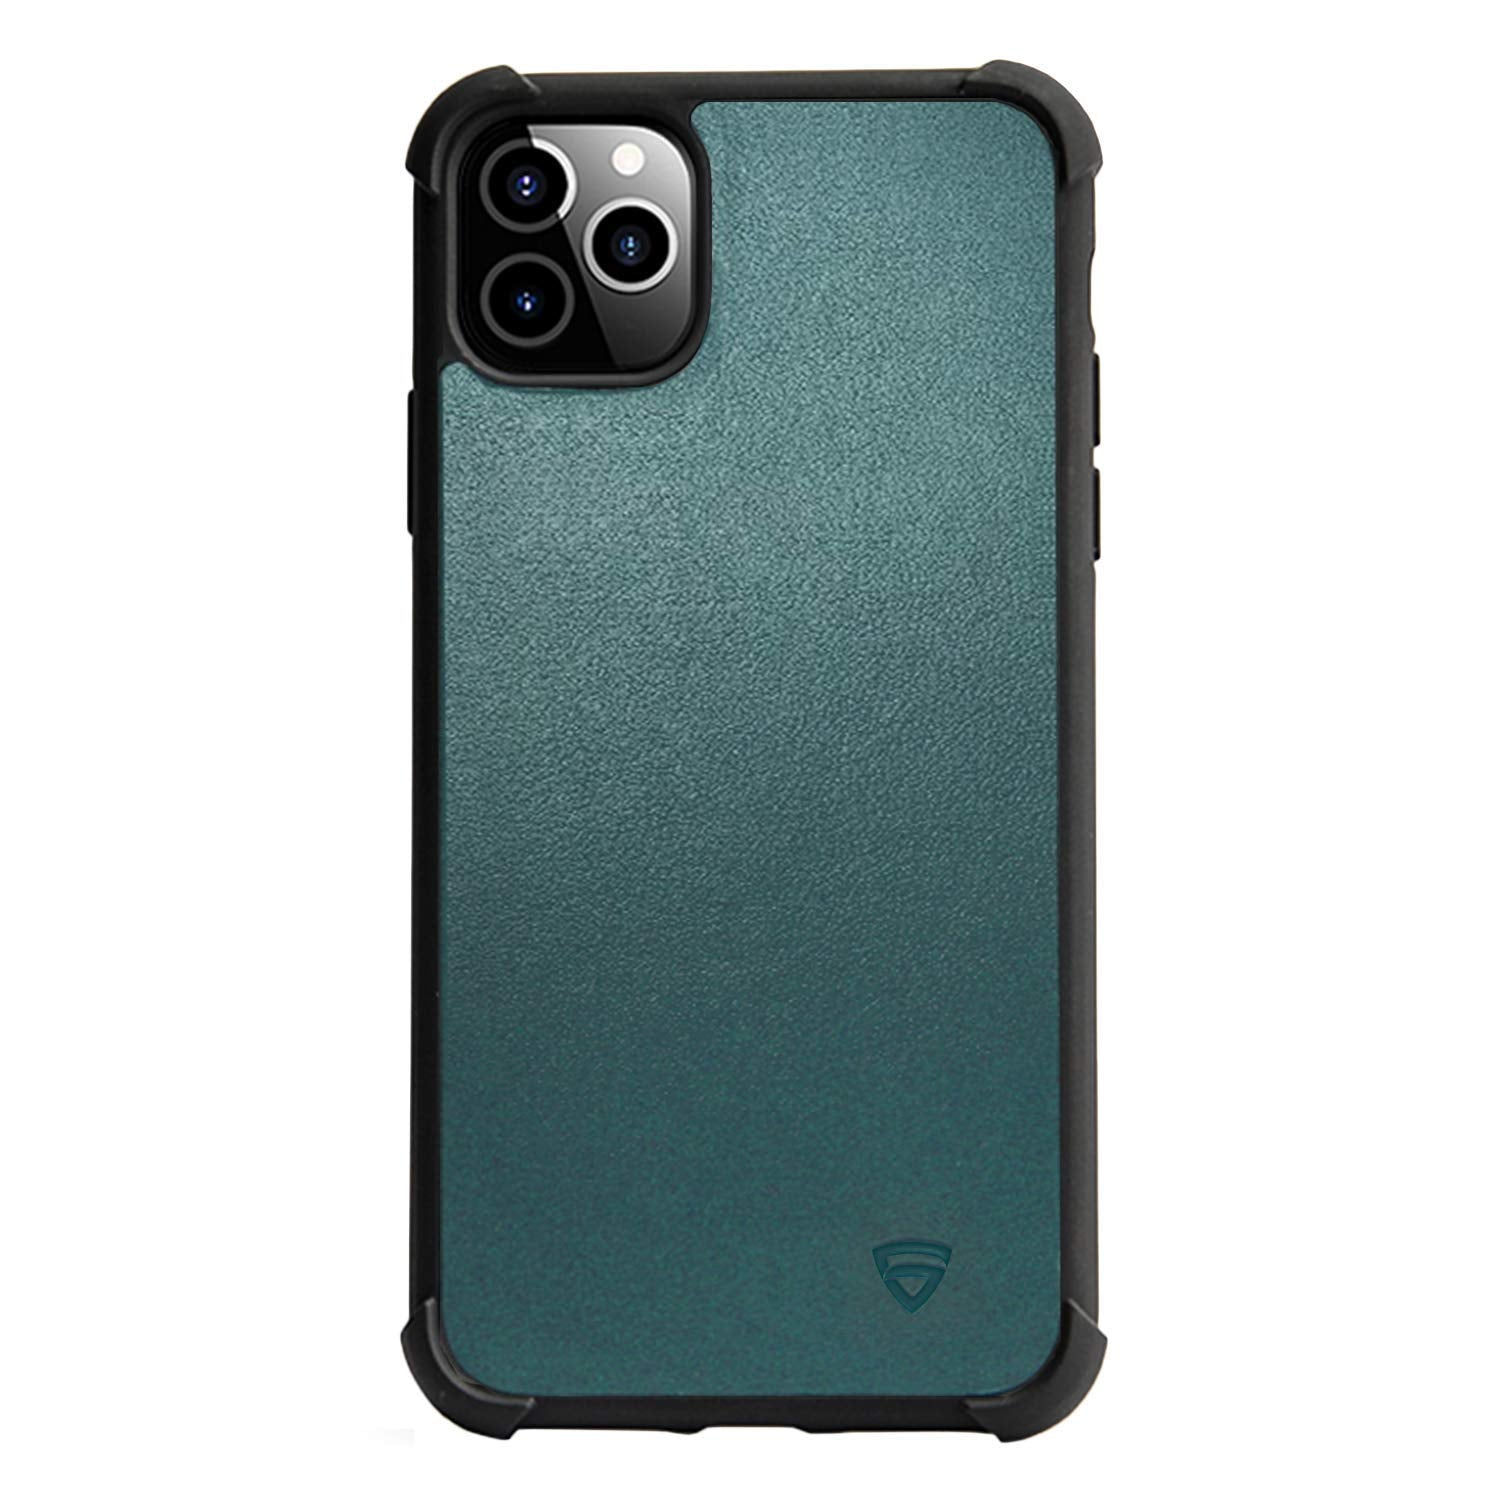 RAEGR iPhone 11 Pro Elements Armor Protective Case/Cover with Genuine Leather